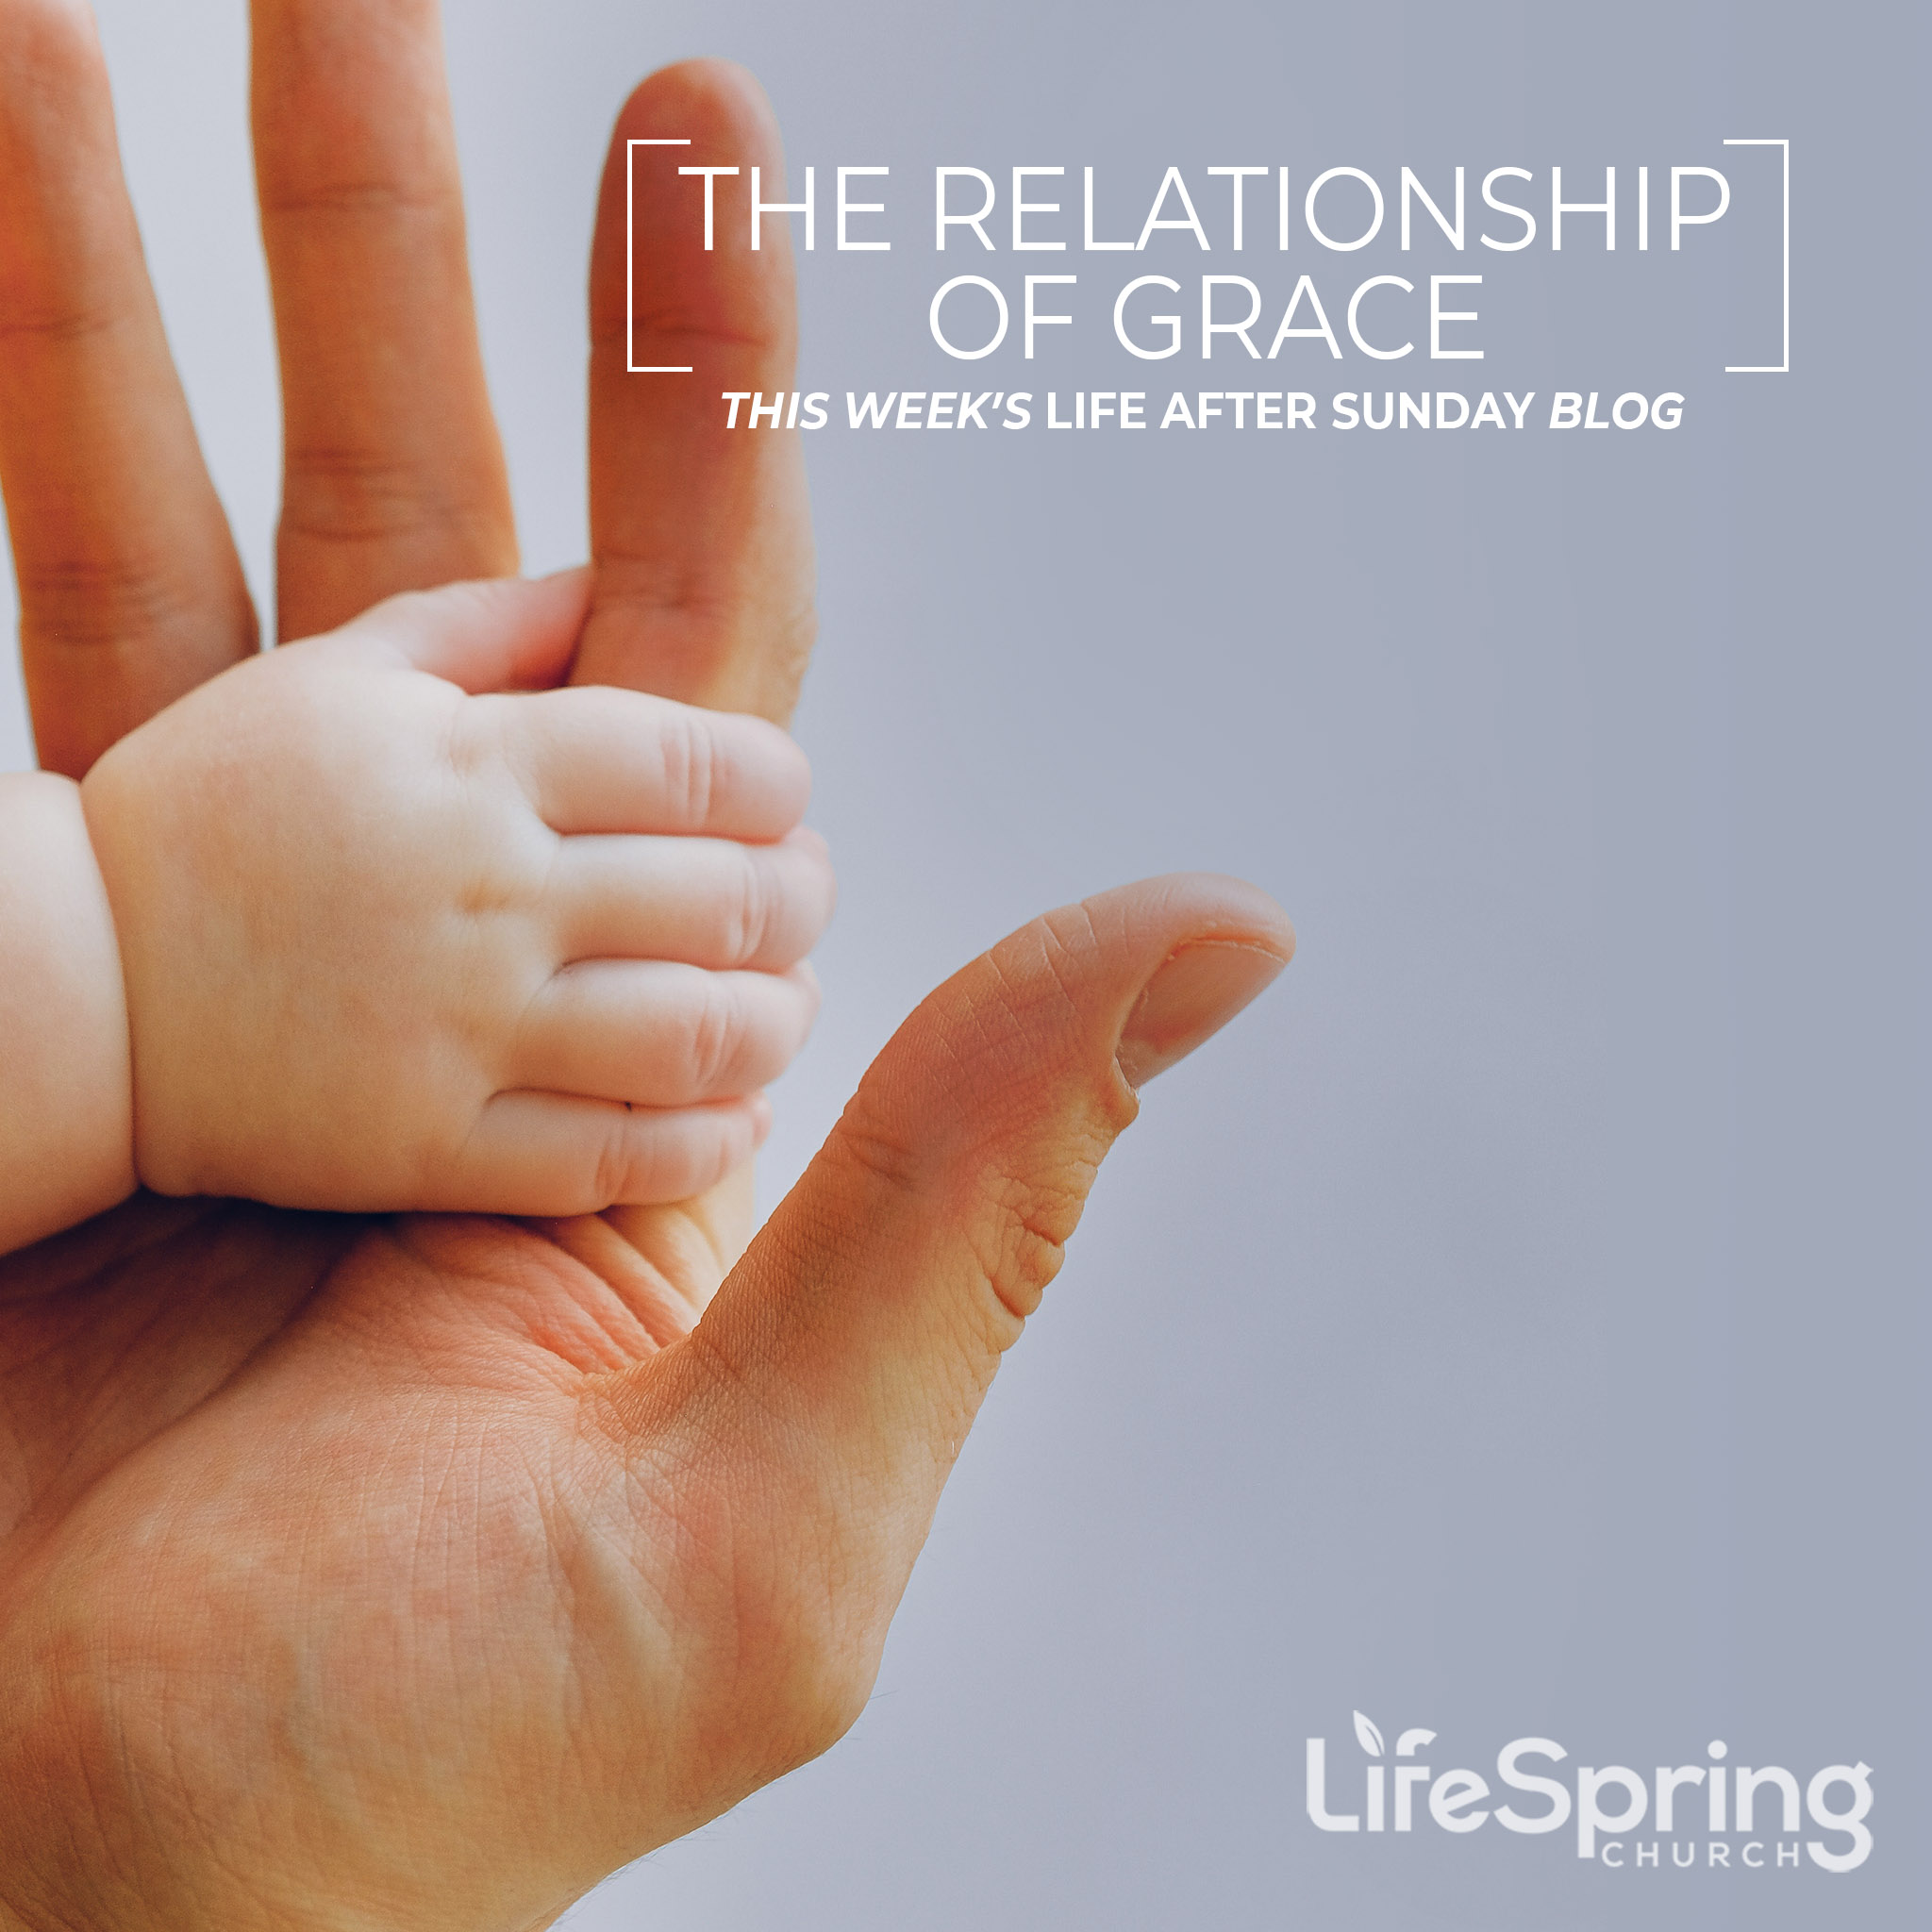 2020-05-21-blog- The Relationship of Grace-image-2